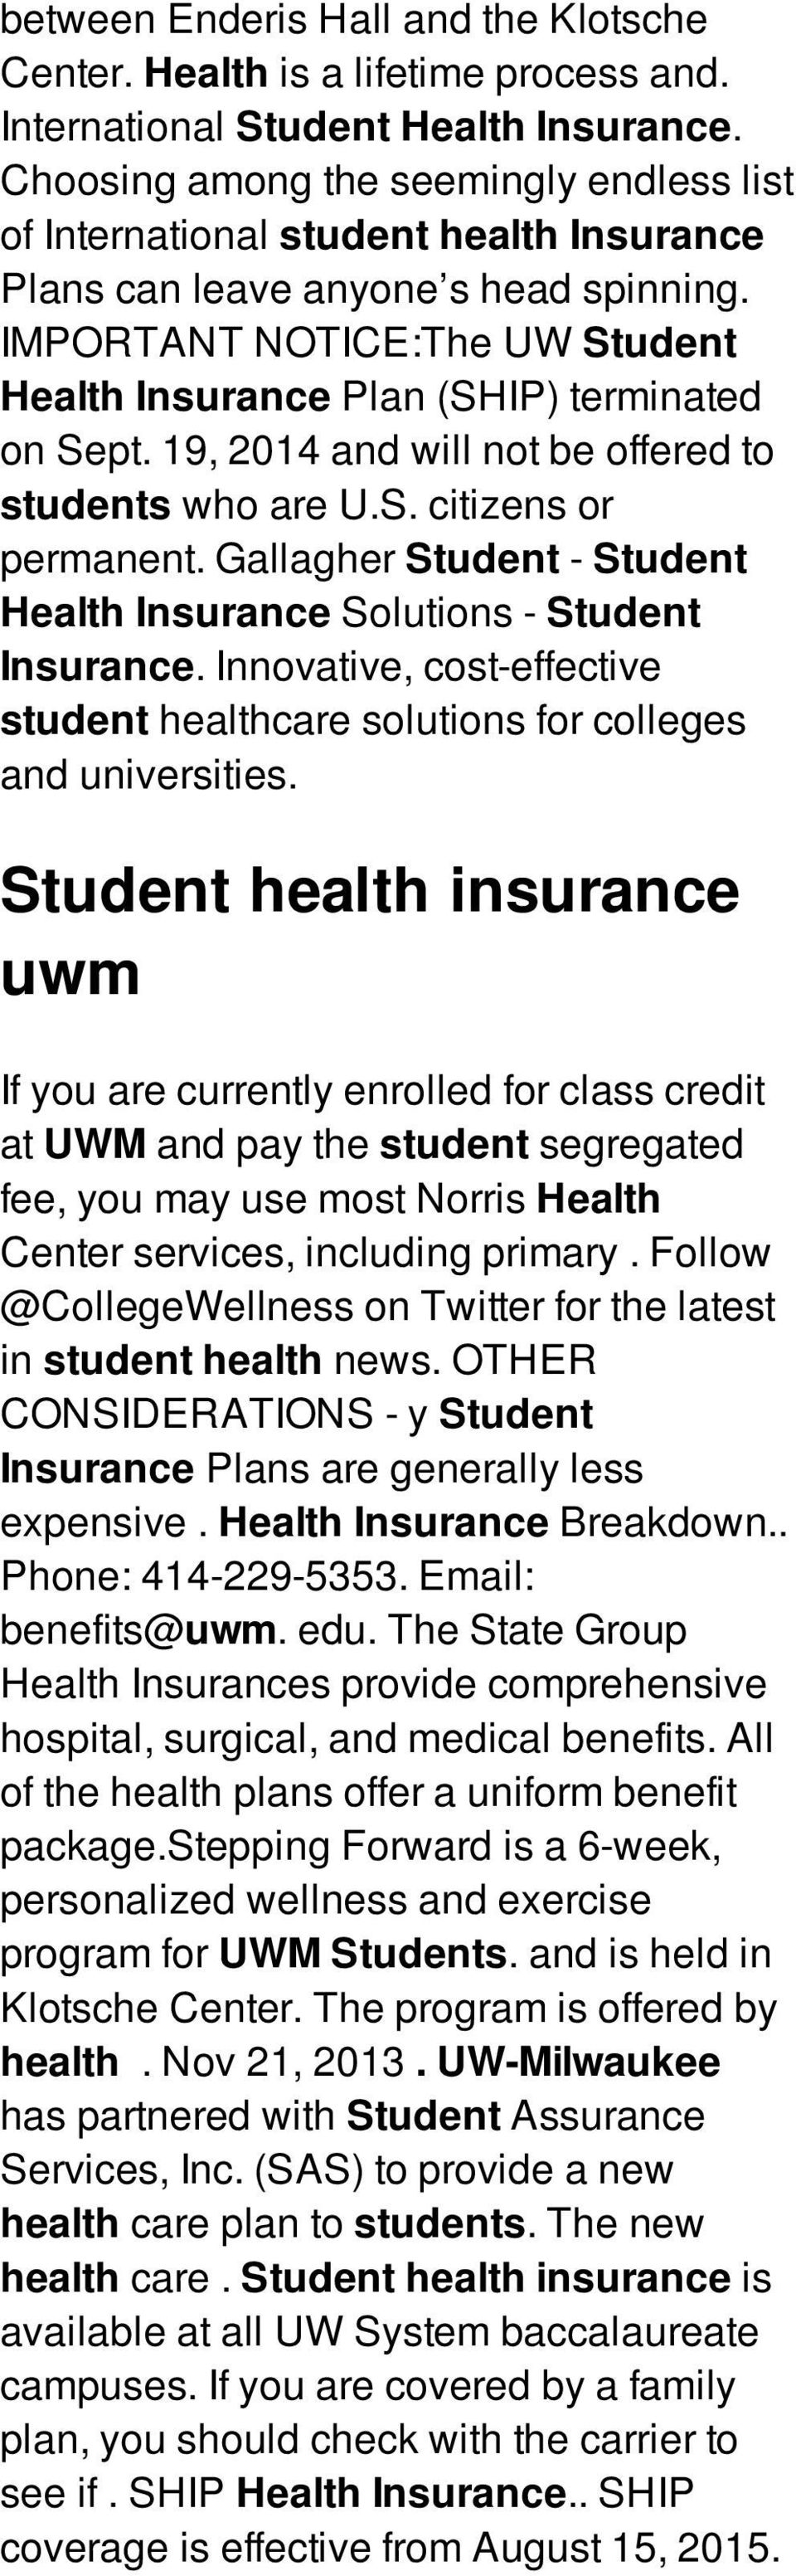 IMPORTANT NOTICE:The UW Student Health Insurance Plan (SHIP) terminated on Sept. 19, 2014 and will not be offered to students who are U.S. citizens or permanent.